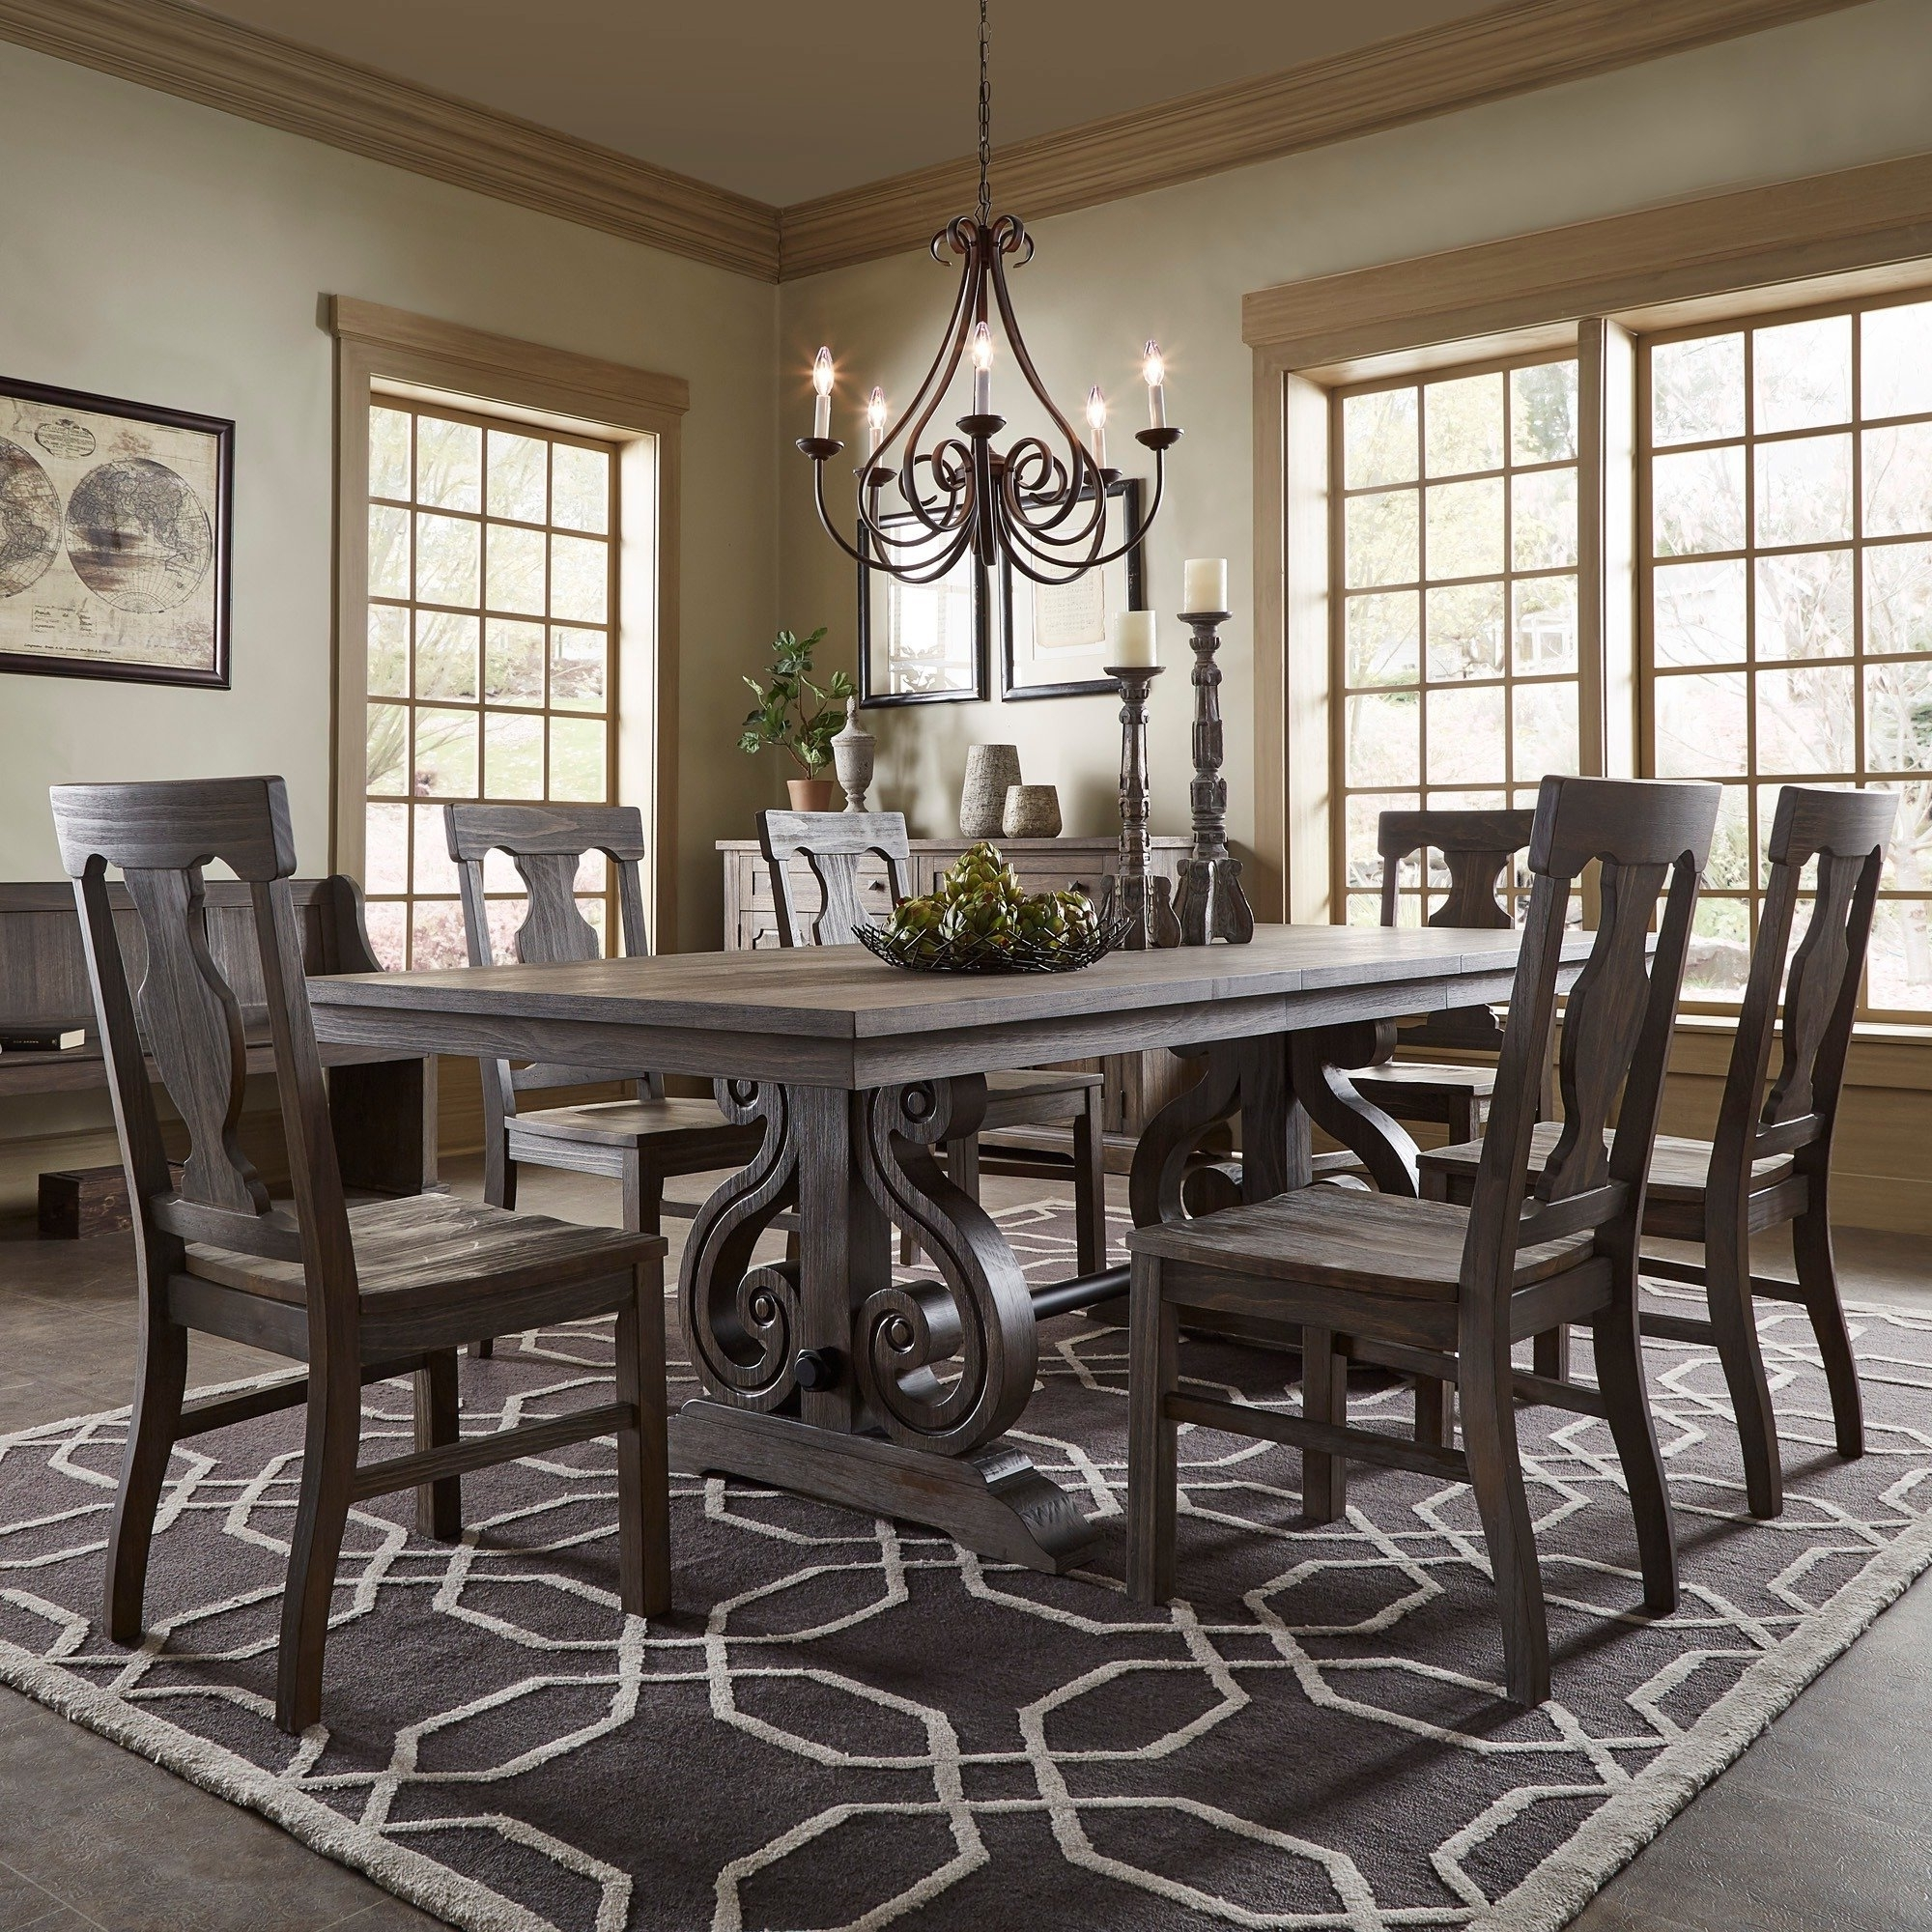 Ebay with Extending Dining Table Sets